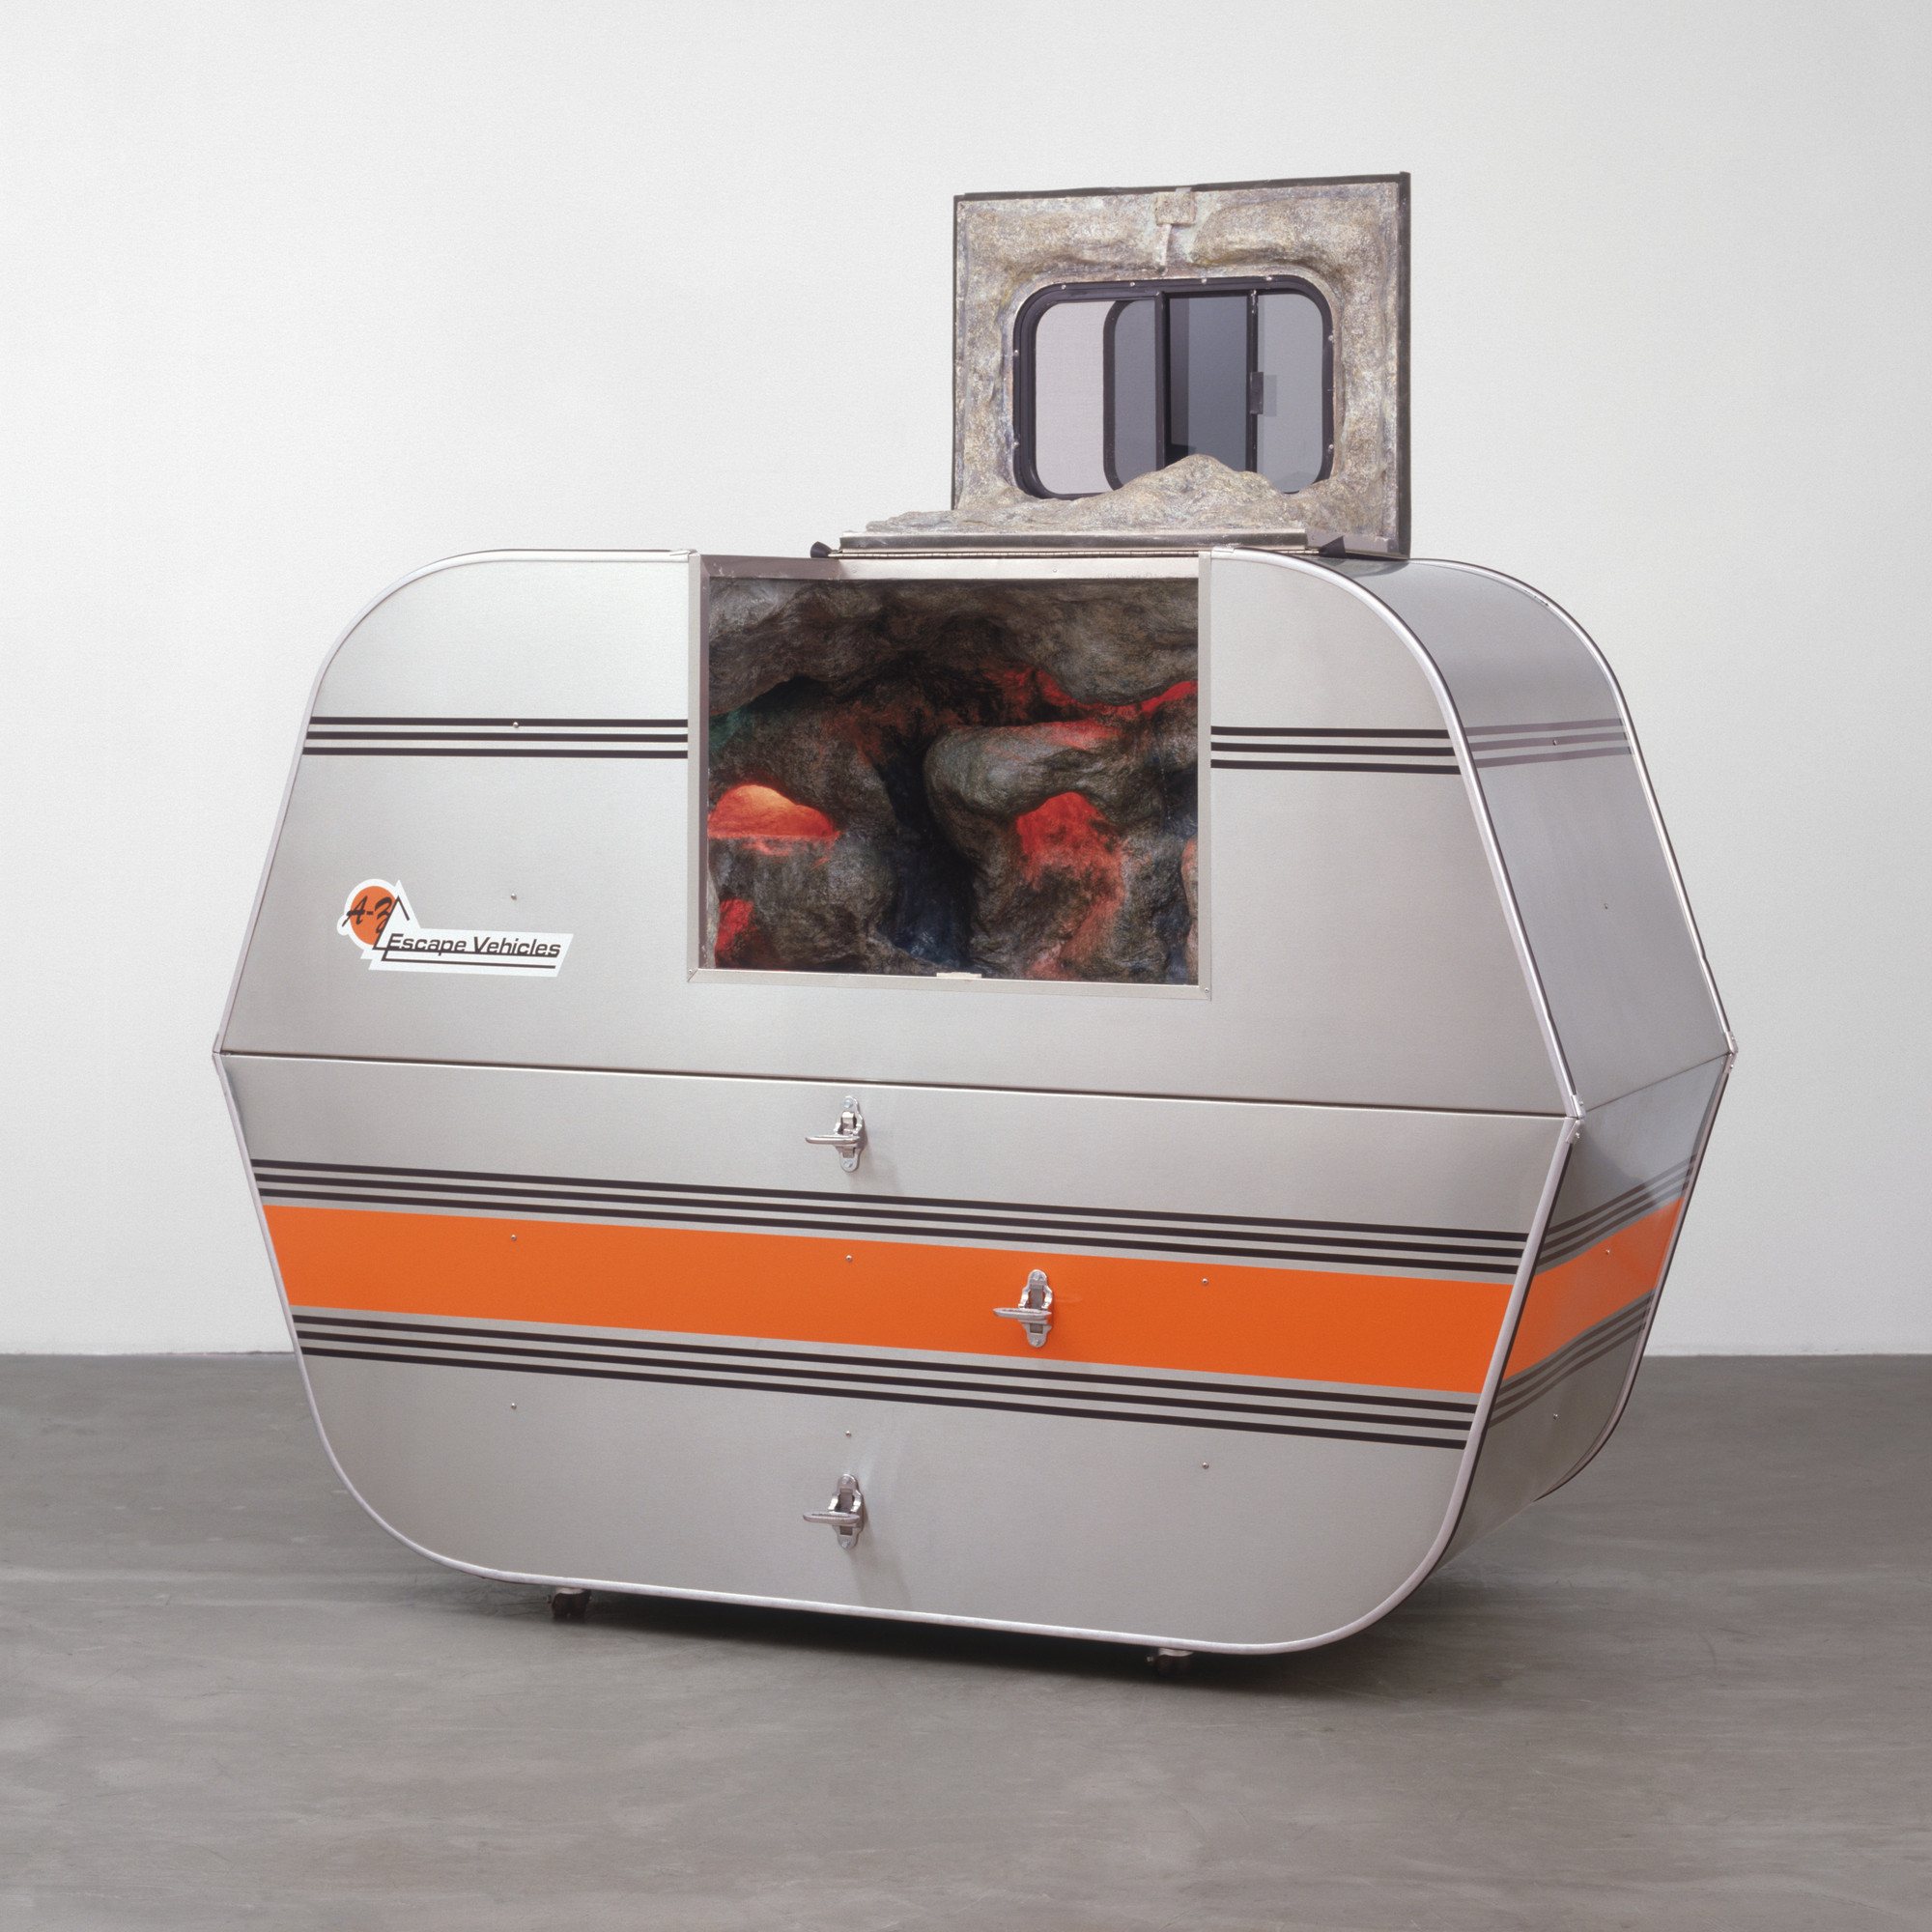 Andrea Zittel. A-Z Escape Vehicle: Customized by Andrea Zittel. 1996